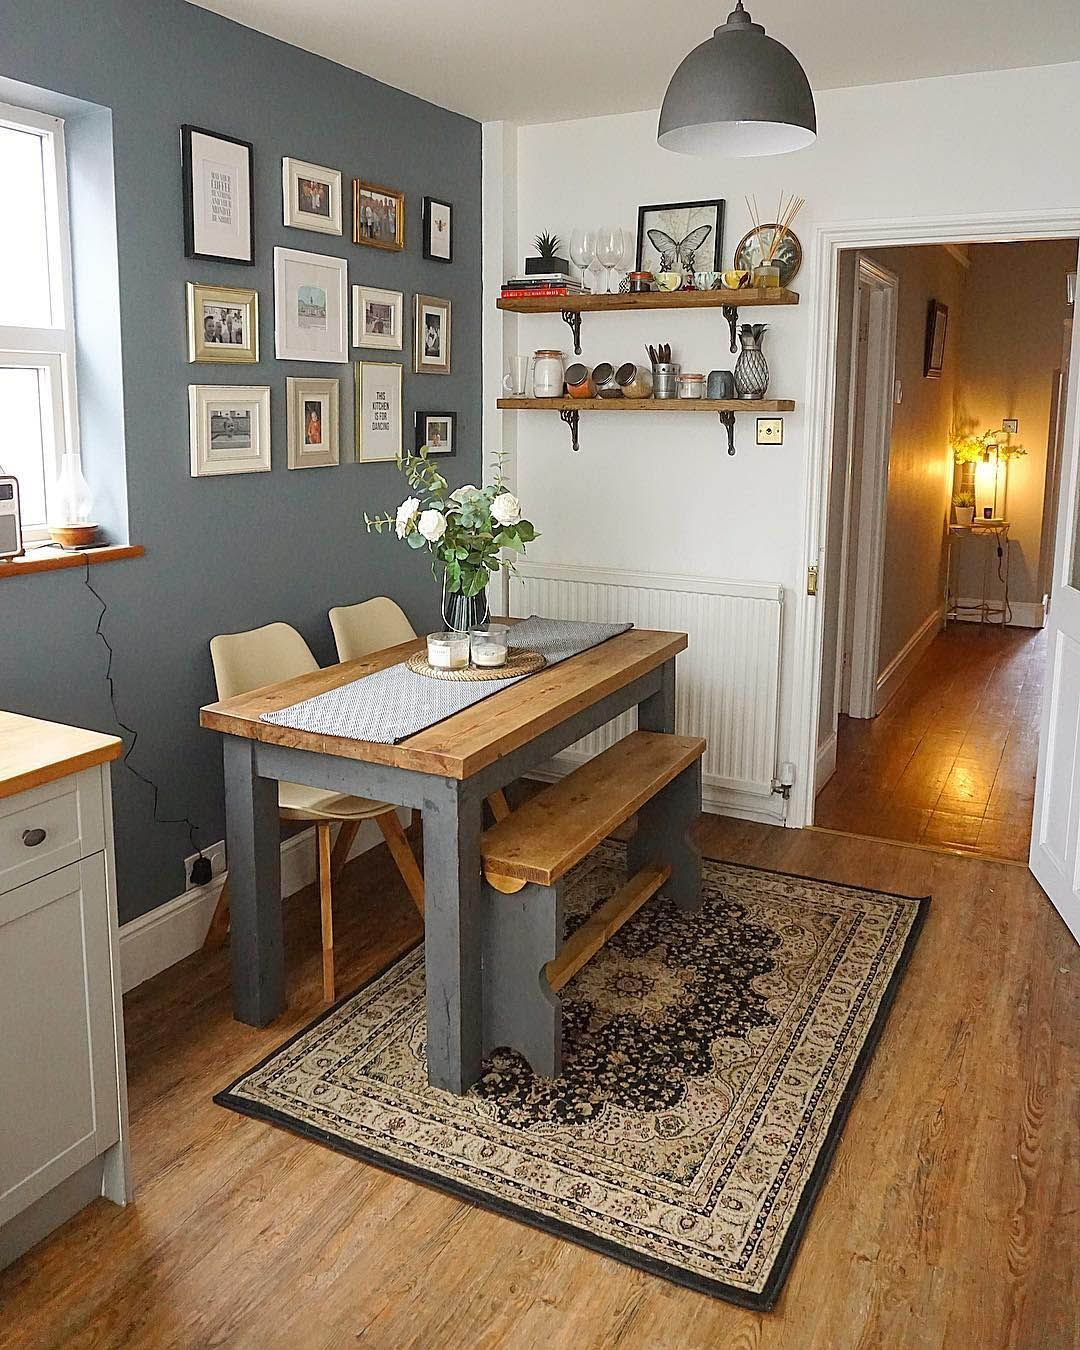 Dining Room Designs For Small Spaces: 8 Small Kitchen Table Ideas For Your Home